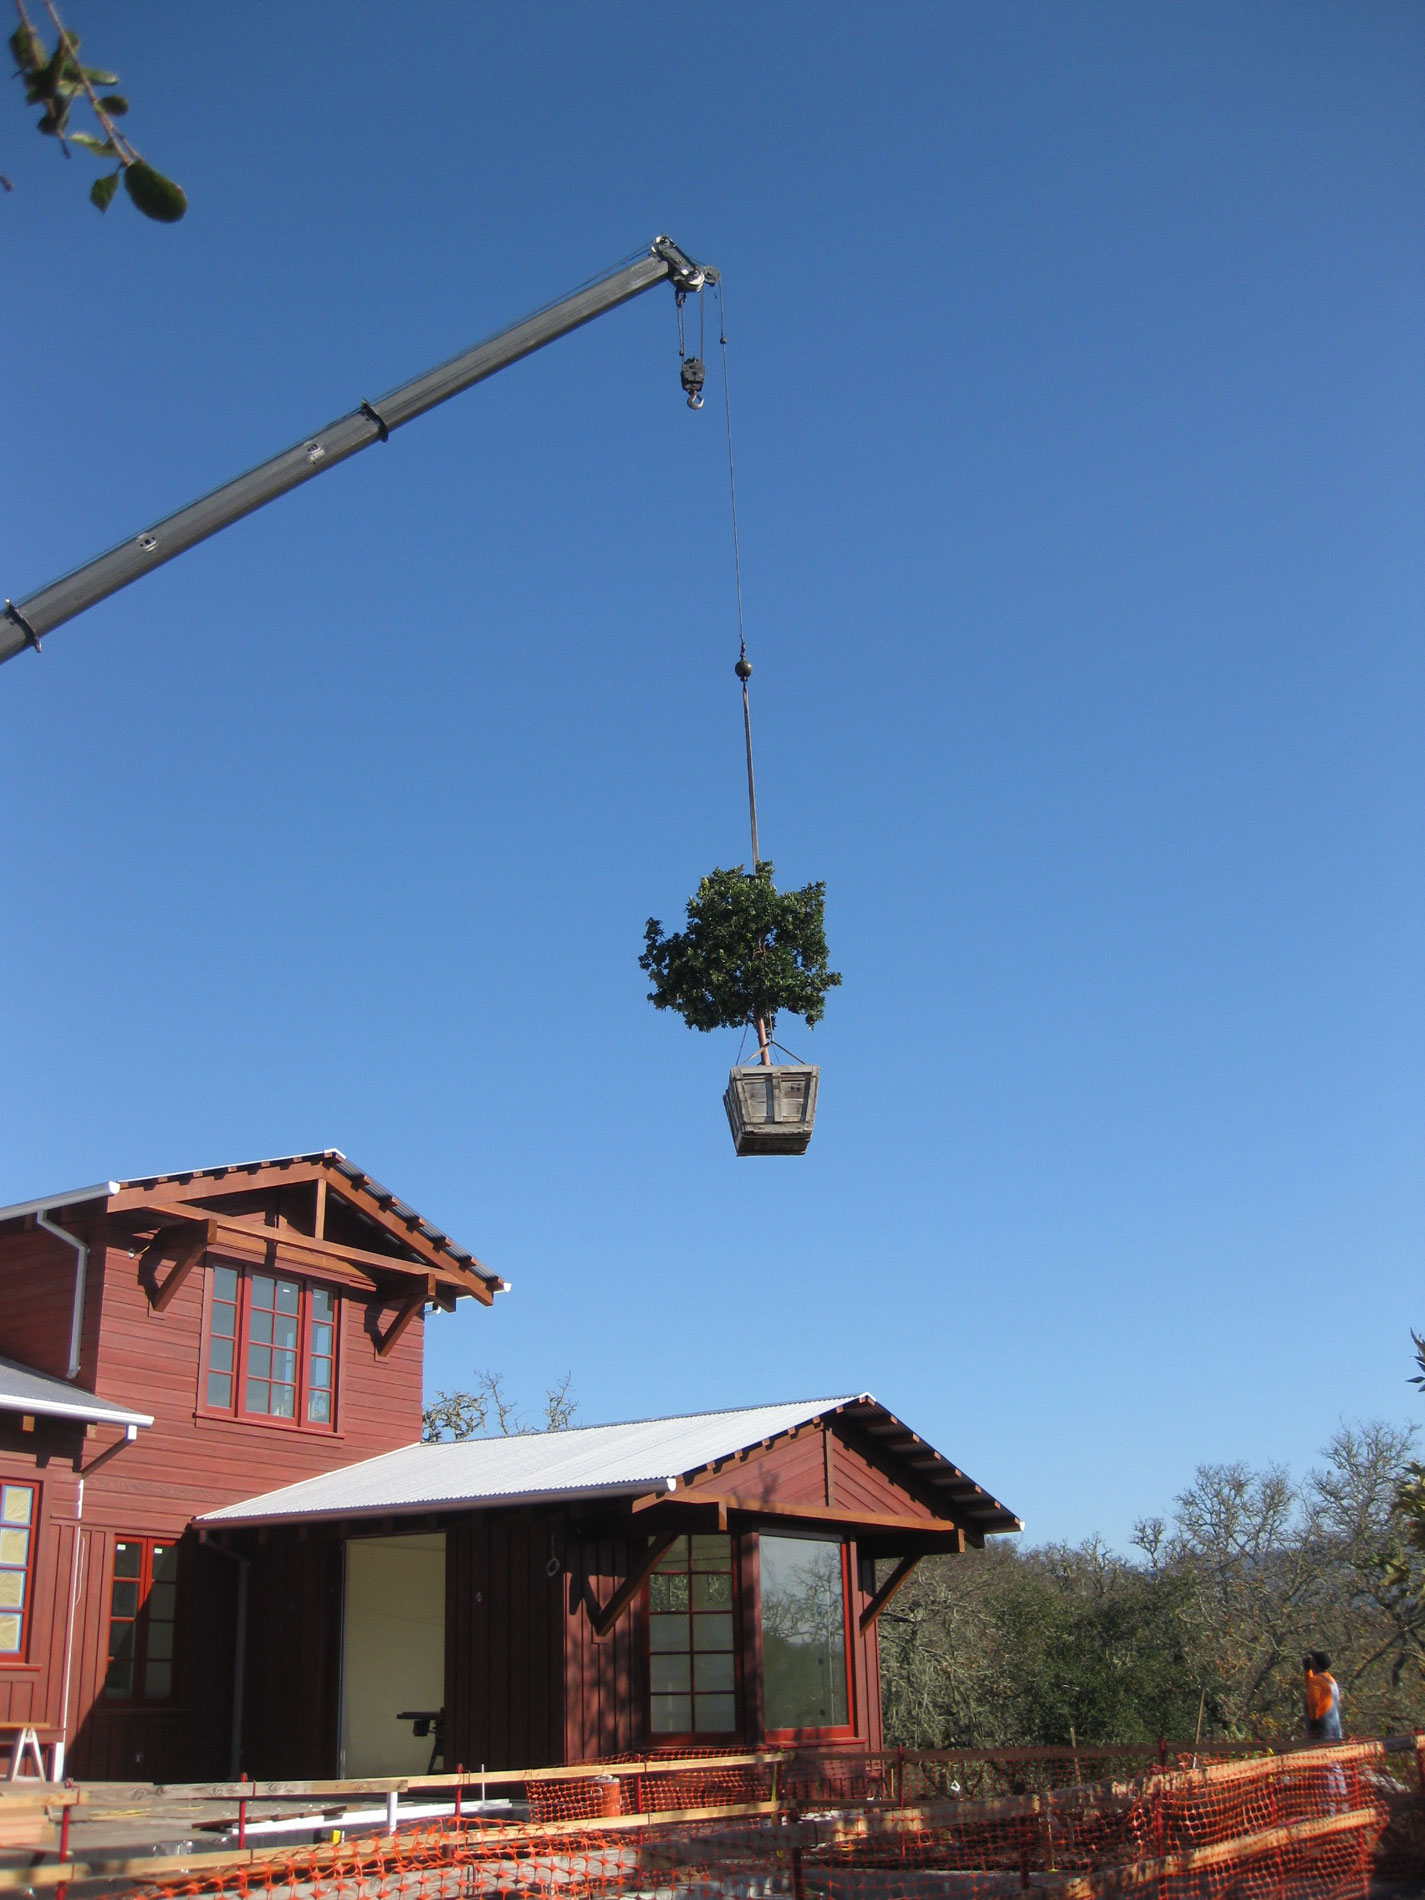 Because access to the site was limited once the new house was constructed, large trees had to be craned into the back gardens.